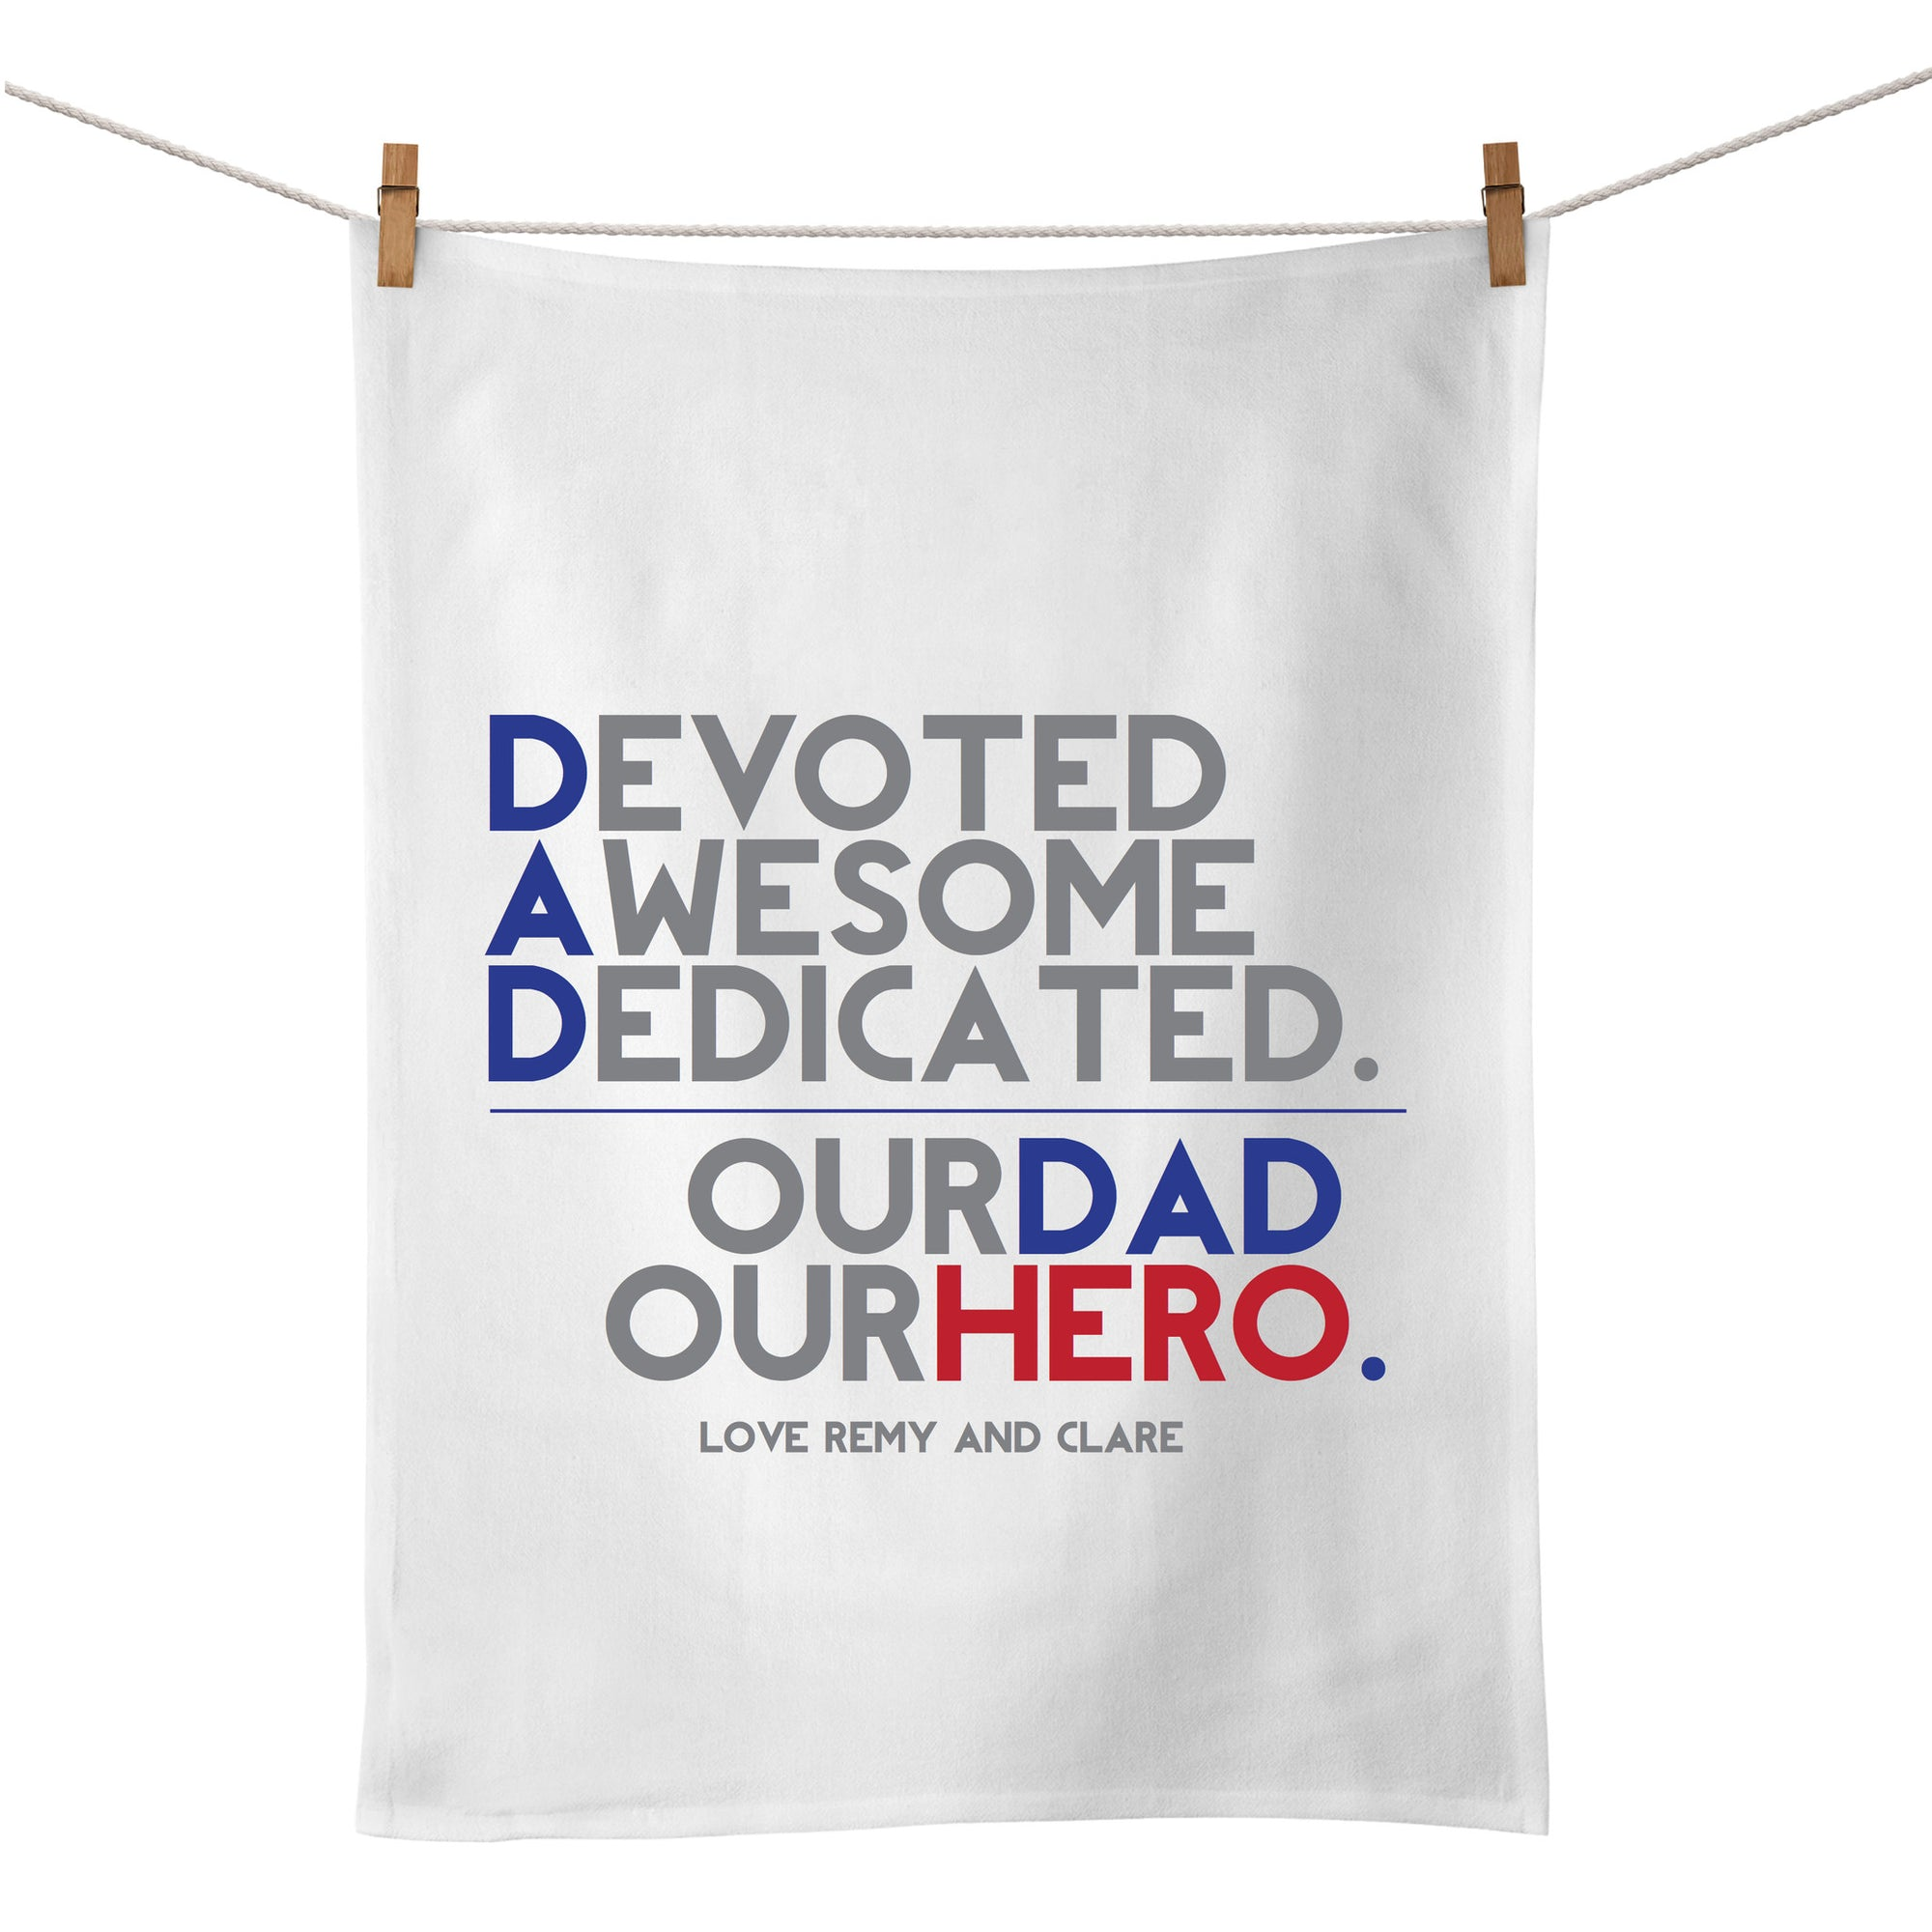 Our Dad Our Hero Tea Towel